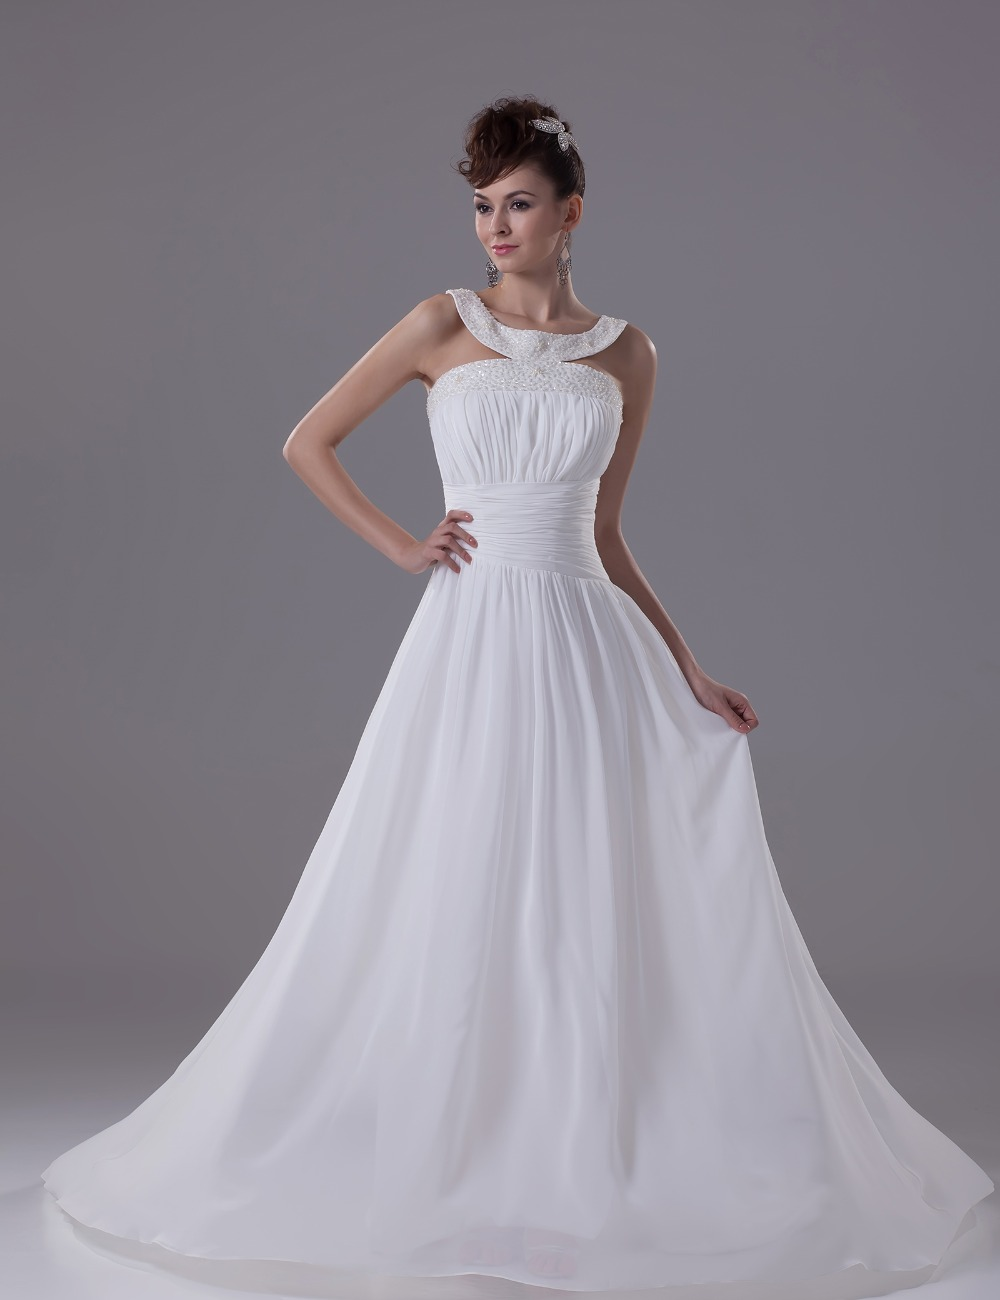 wedding dresses 2016 vintage weeding gown a line sleeveless flowy